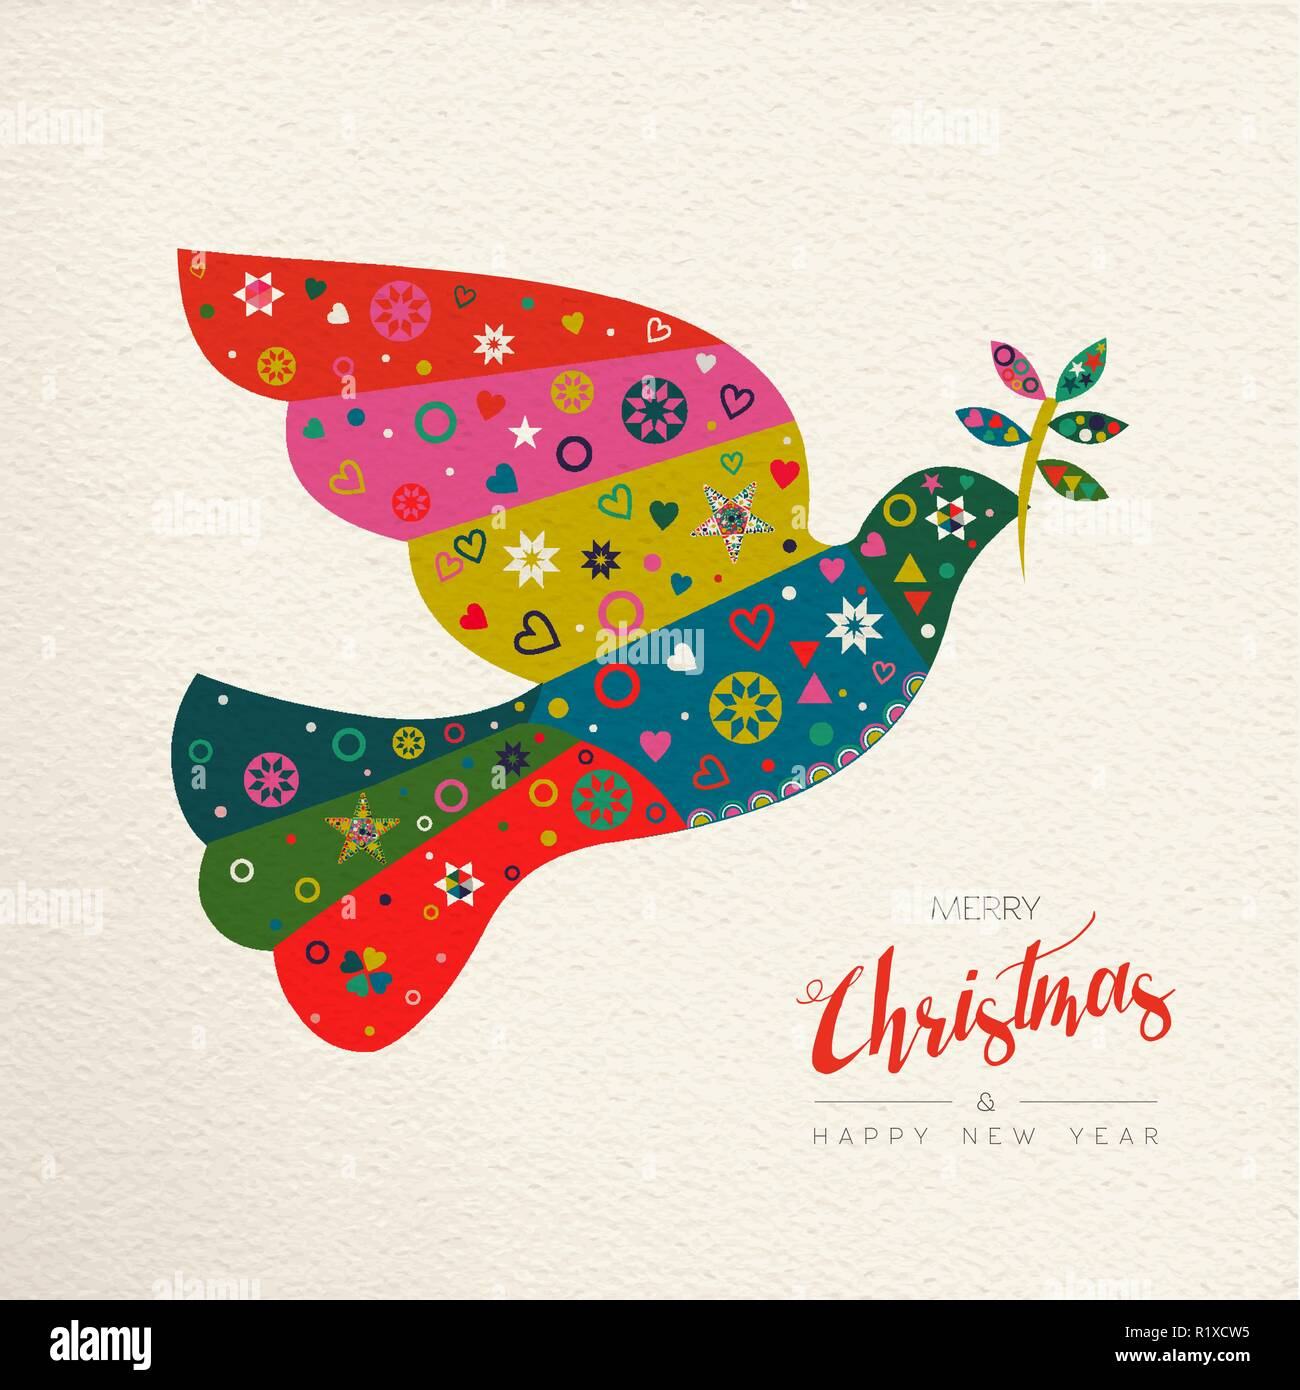 Merry Christmas and Happy New Year folk art greeting card bird illustration. Scandinavian vintage style dove with traditional geometric shapes in fest - Stock Image